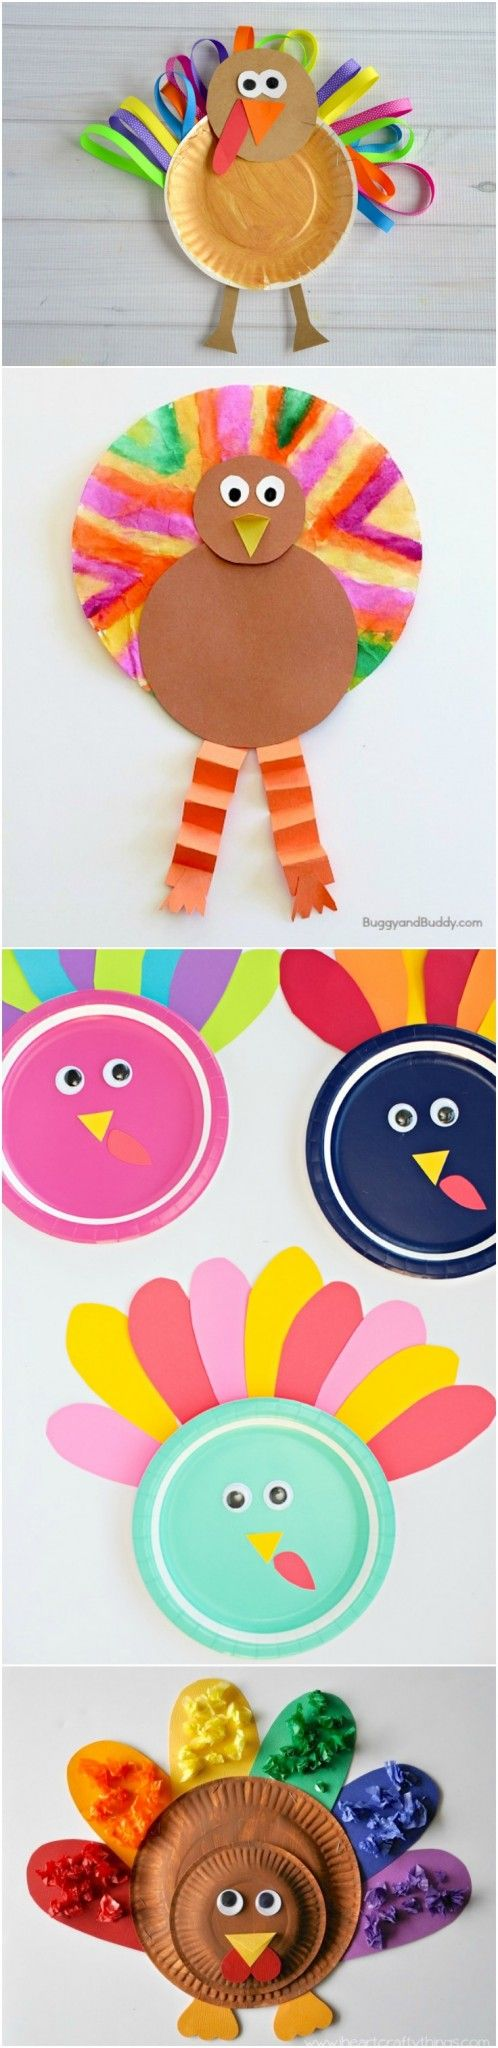 You're going to love this collection of 20 Thanksgiving turkey crafts for kids! Great for toddlers, preschool, or kindergarten. Adults will enjoy helping with these easy DIY projects!